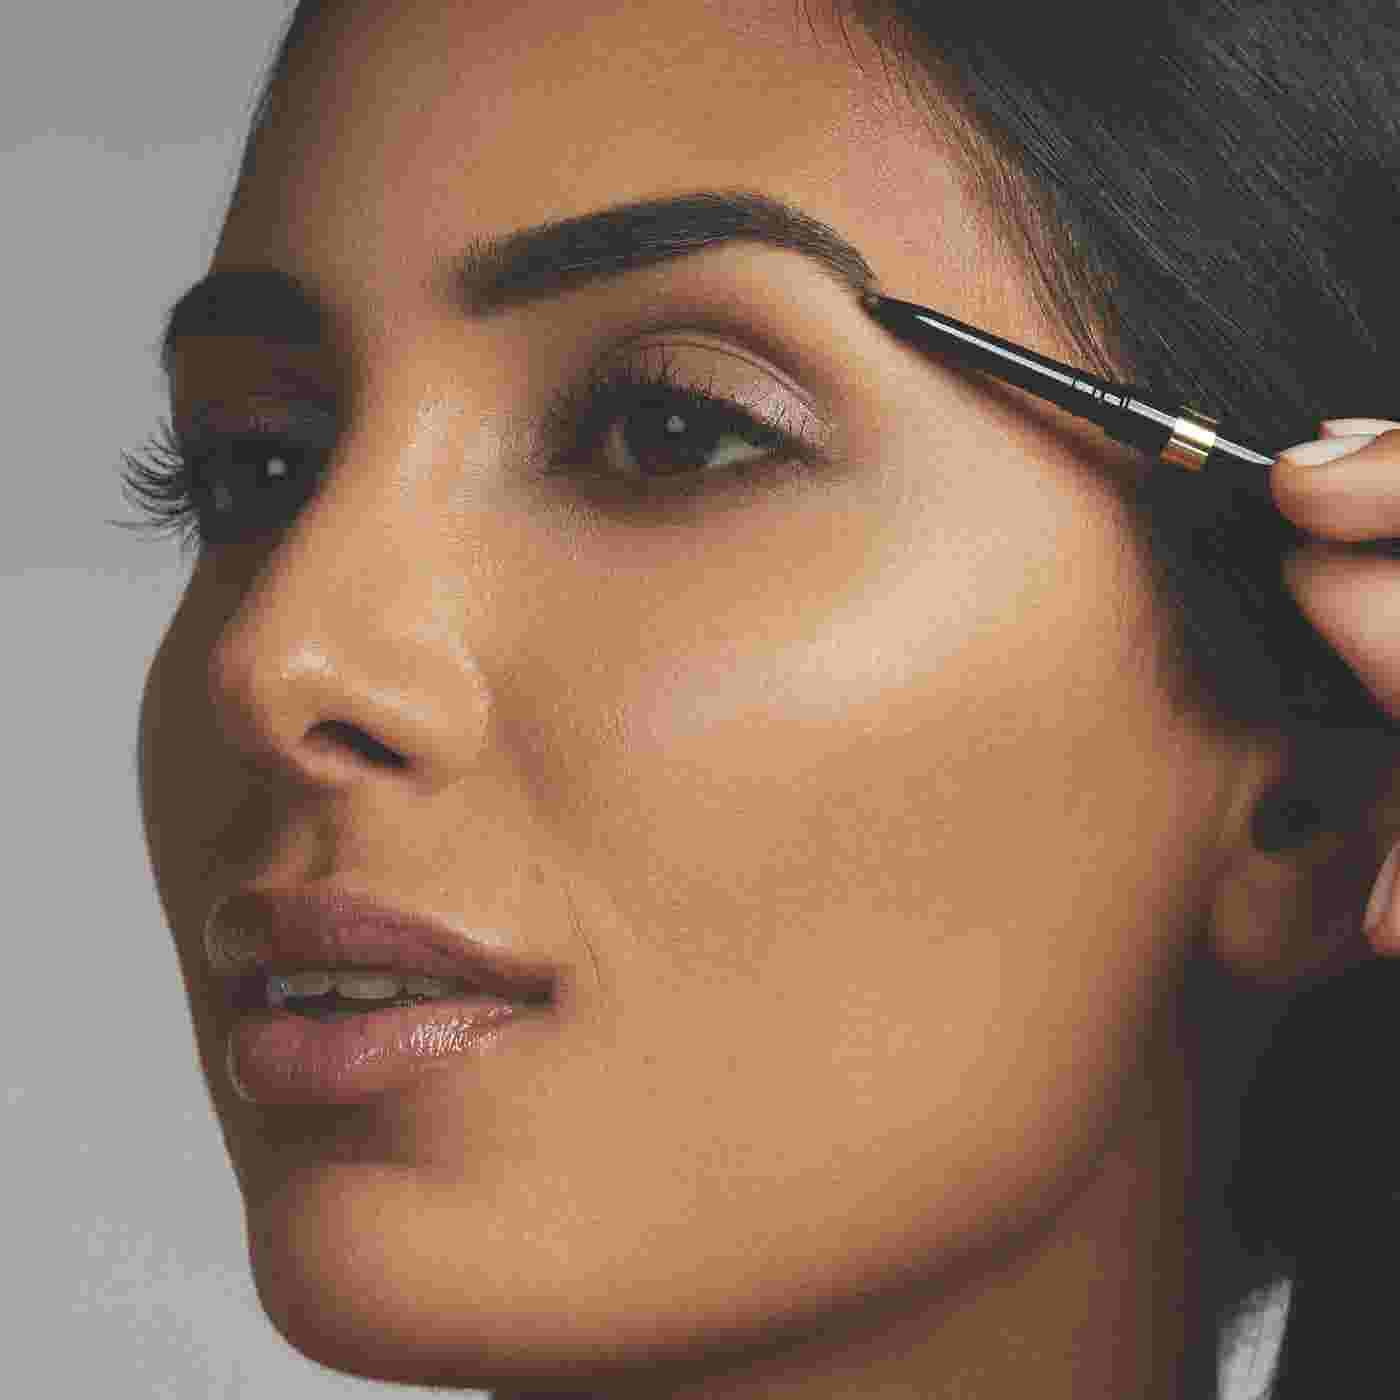 Model filling brows with Max Factor Brow Shaper Eyebrow Pencil